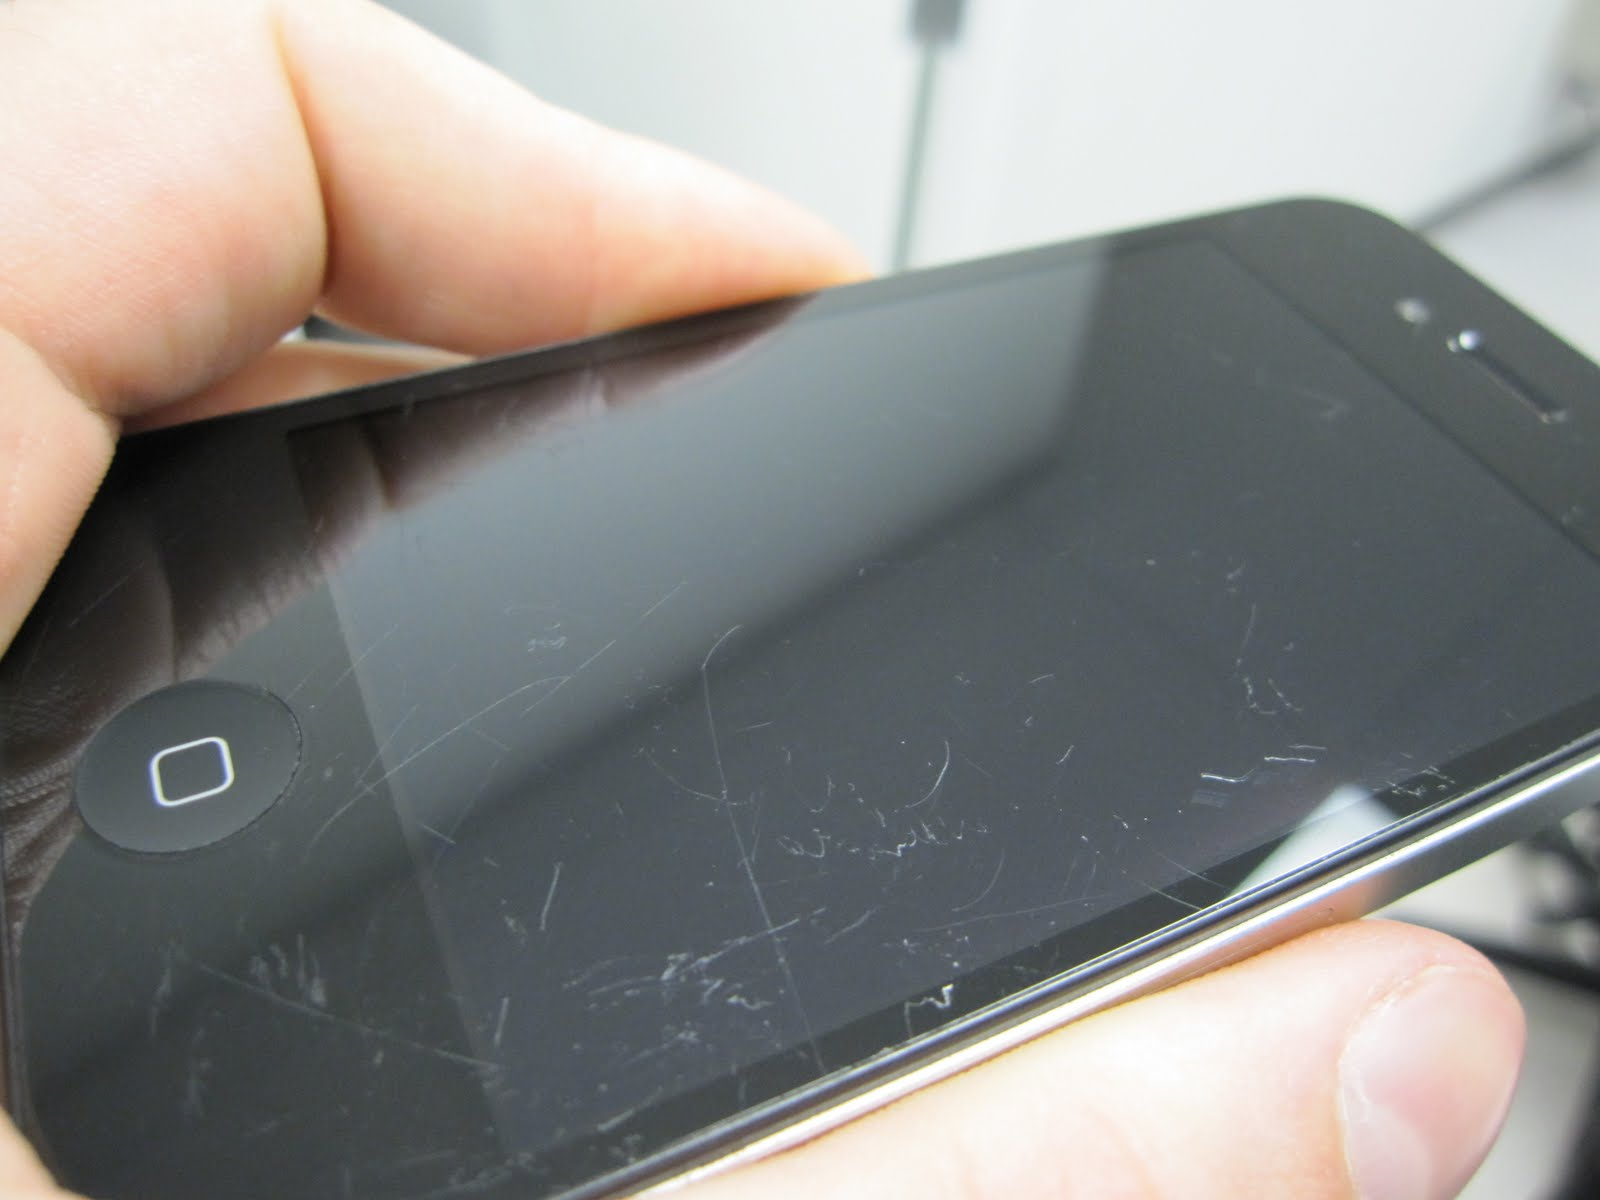 Cleaning Your Phoneâs Screen the Proper Way - Image 1